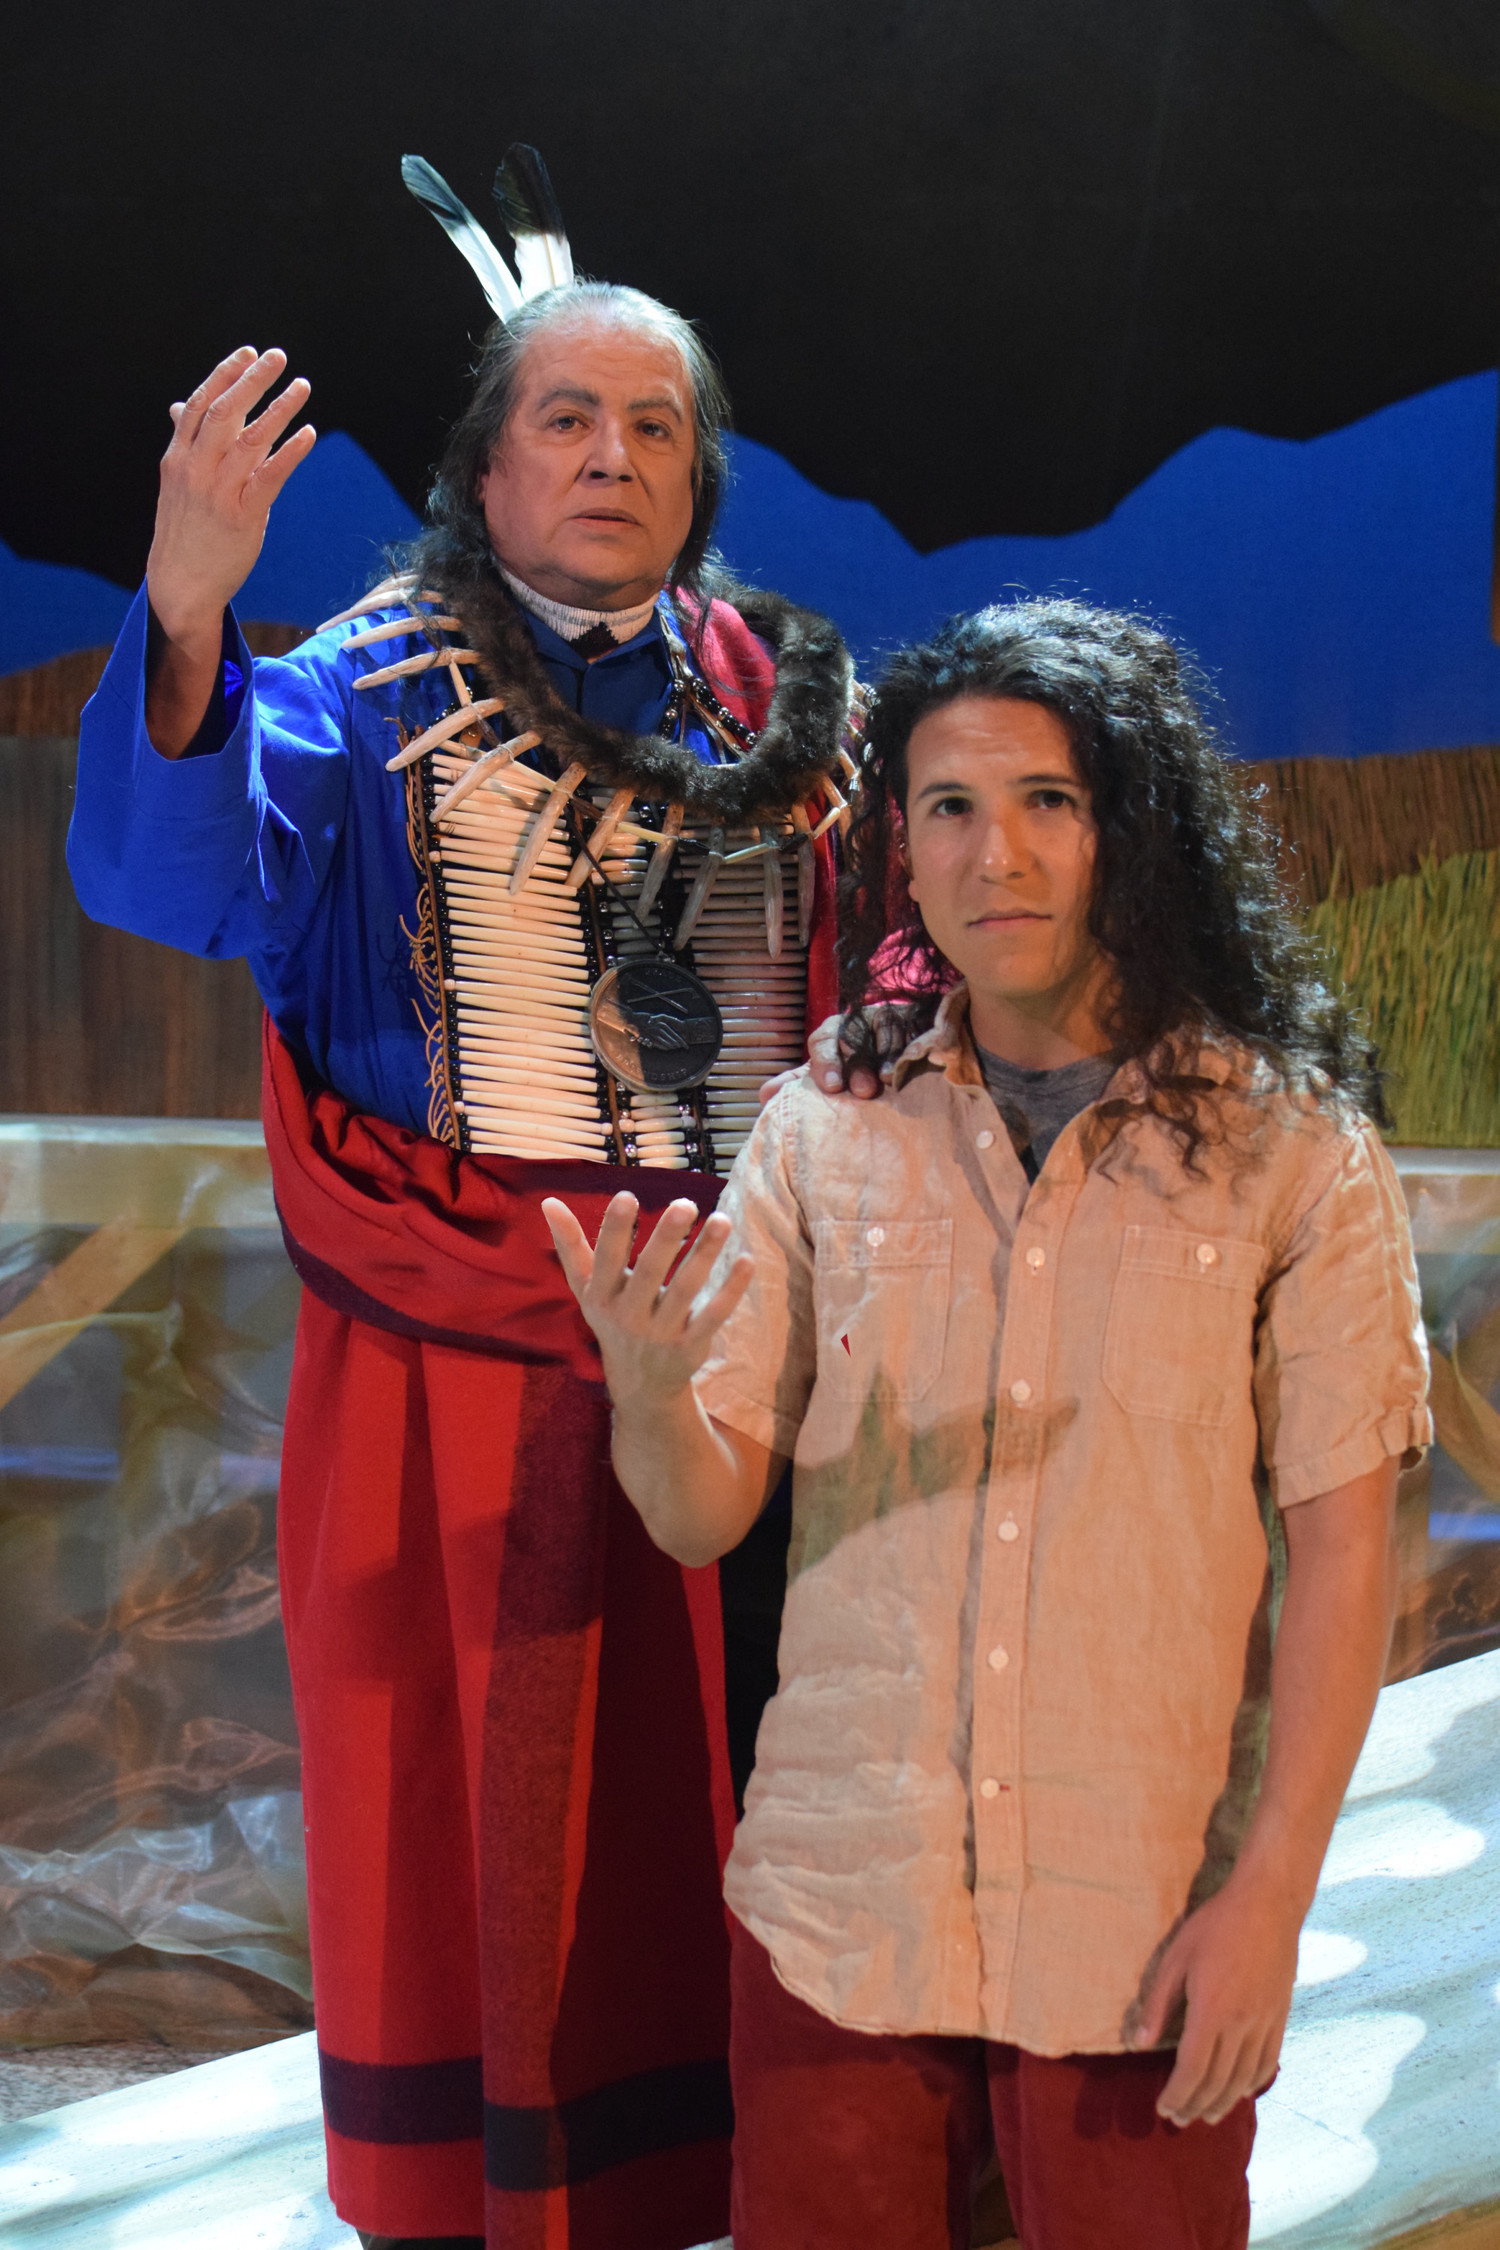 BWW Review: RETURN TO NIOBRARA at The Rose Theater Deserves the Praise